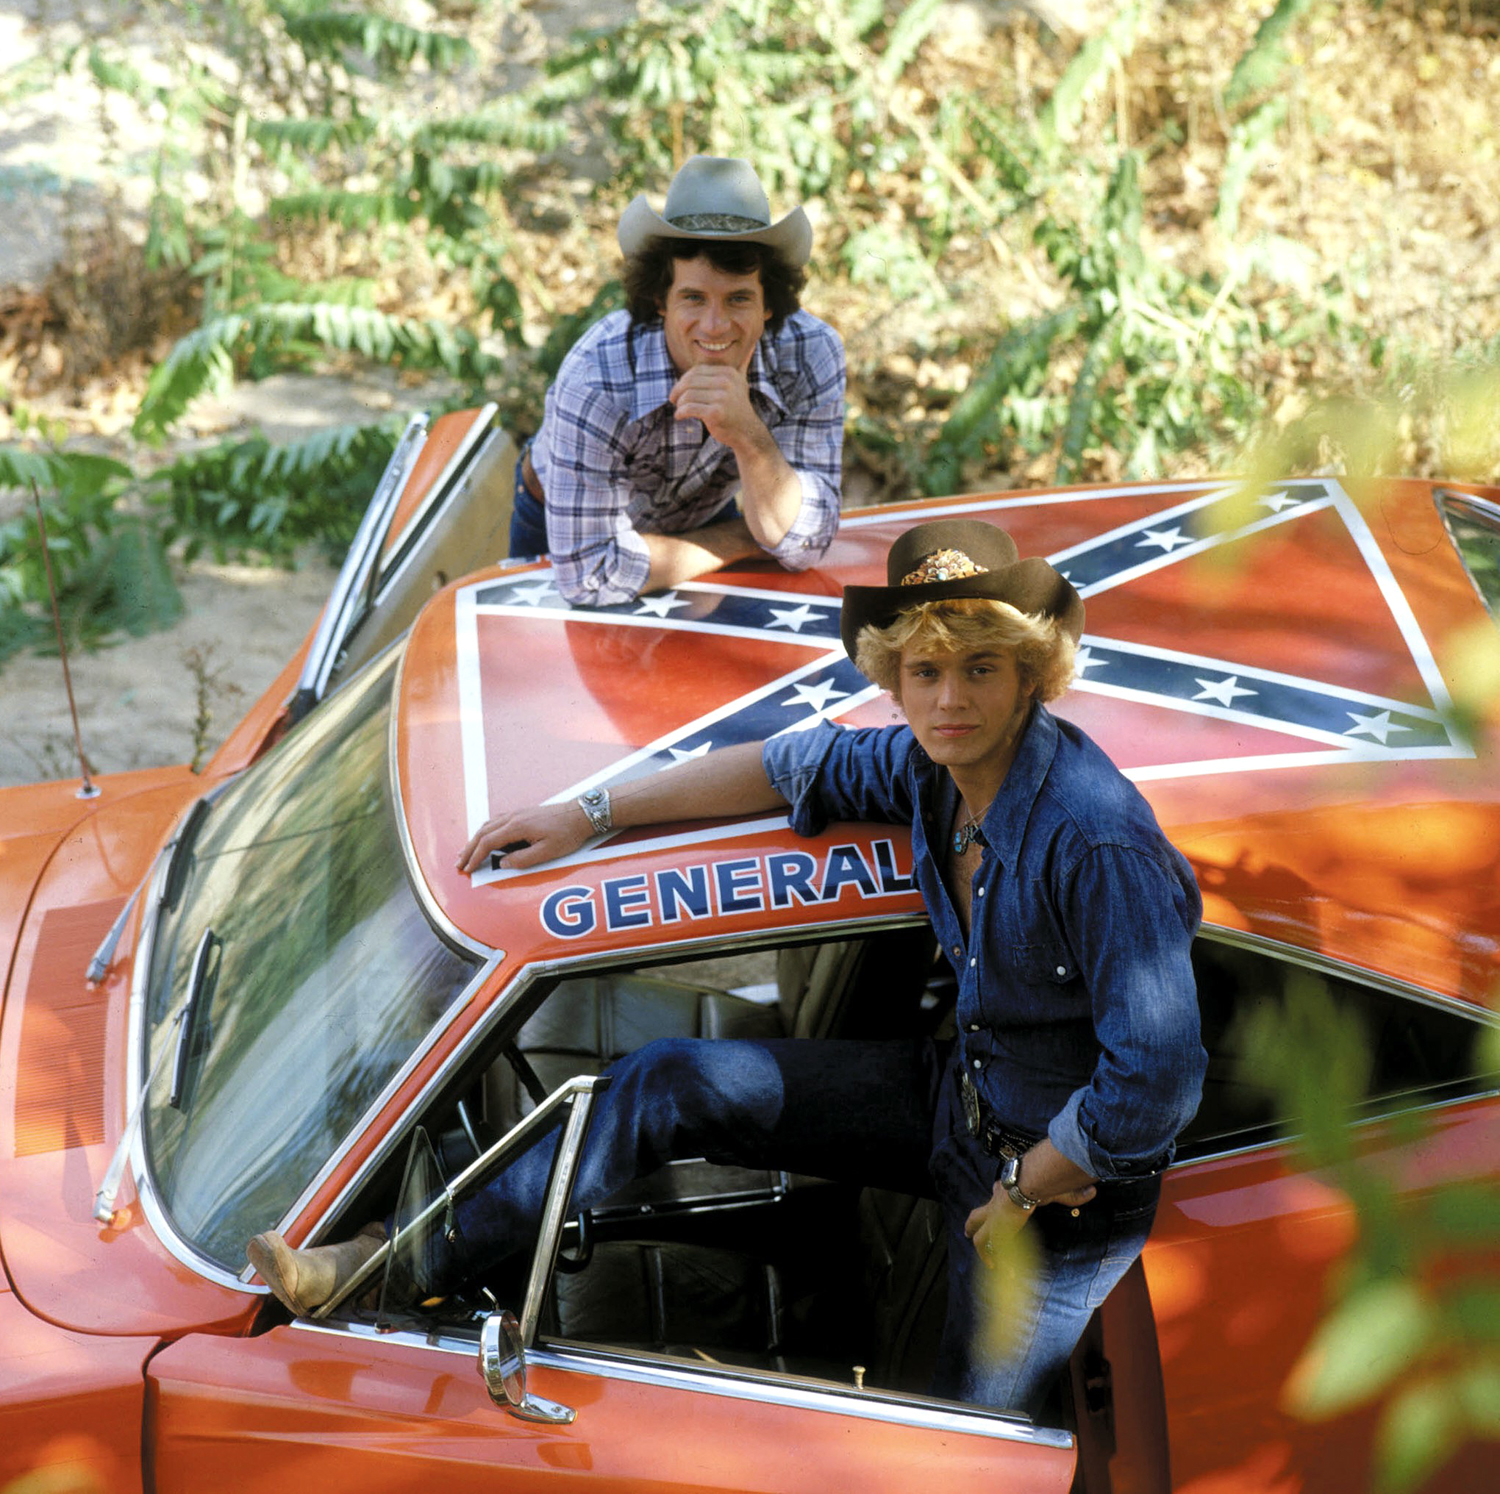 Dukes of Hazzard General Lee Roof Hazzard 39 General Lee Toys